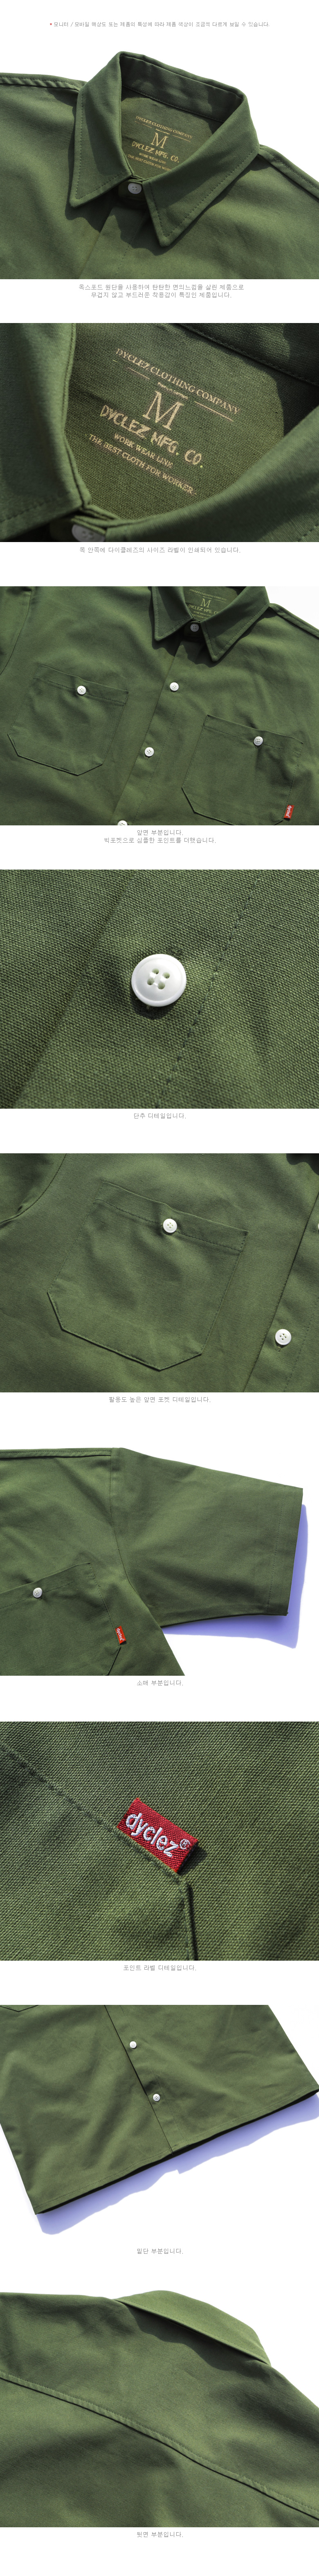 20180412_dy_twopocket_shirt_khaki_uk_02.jpg